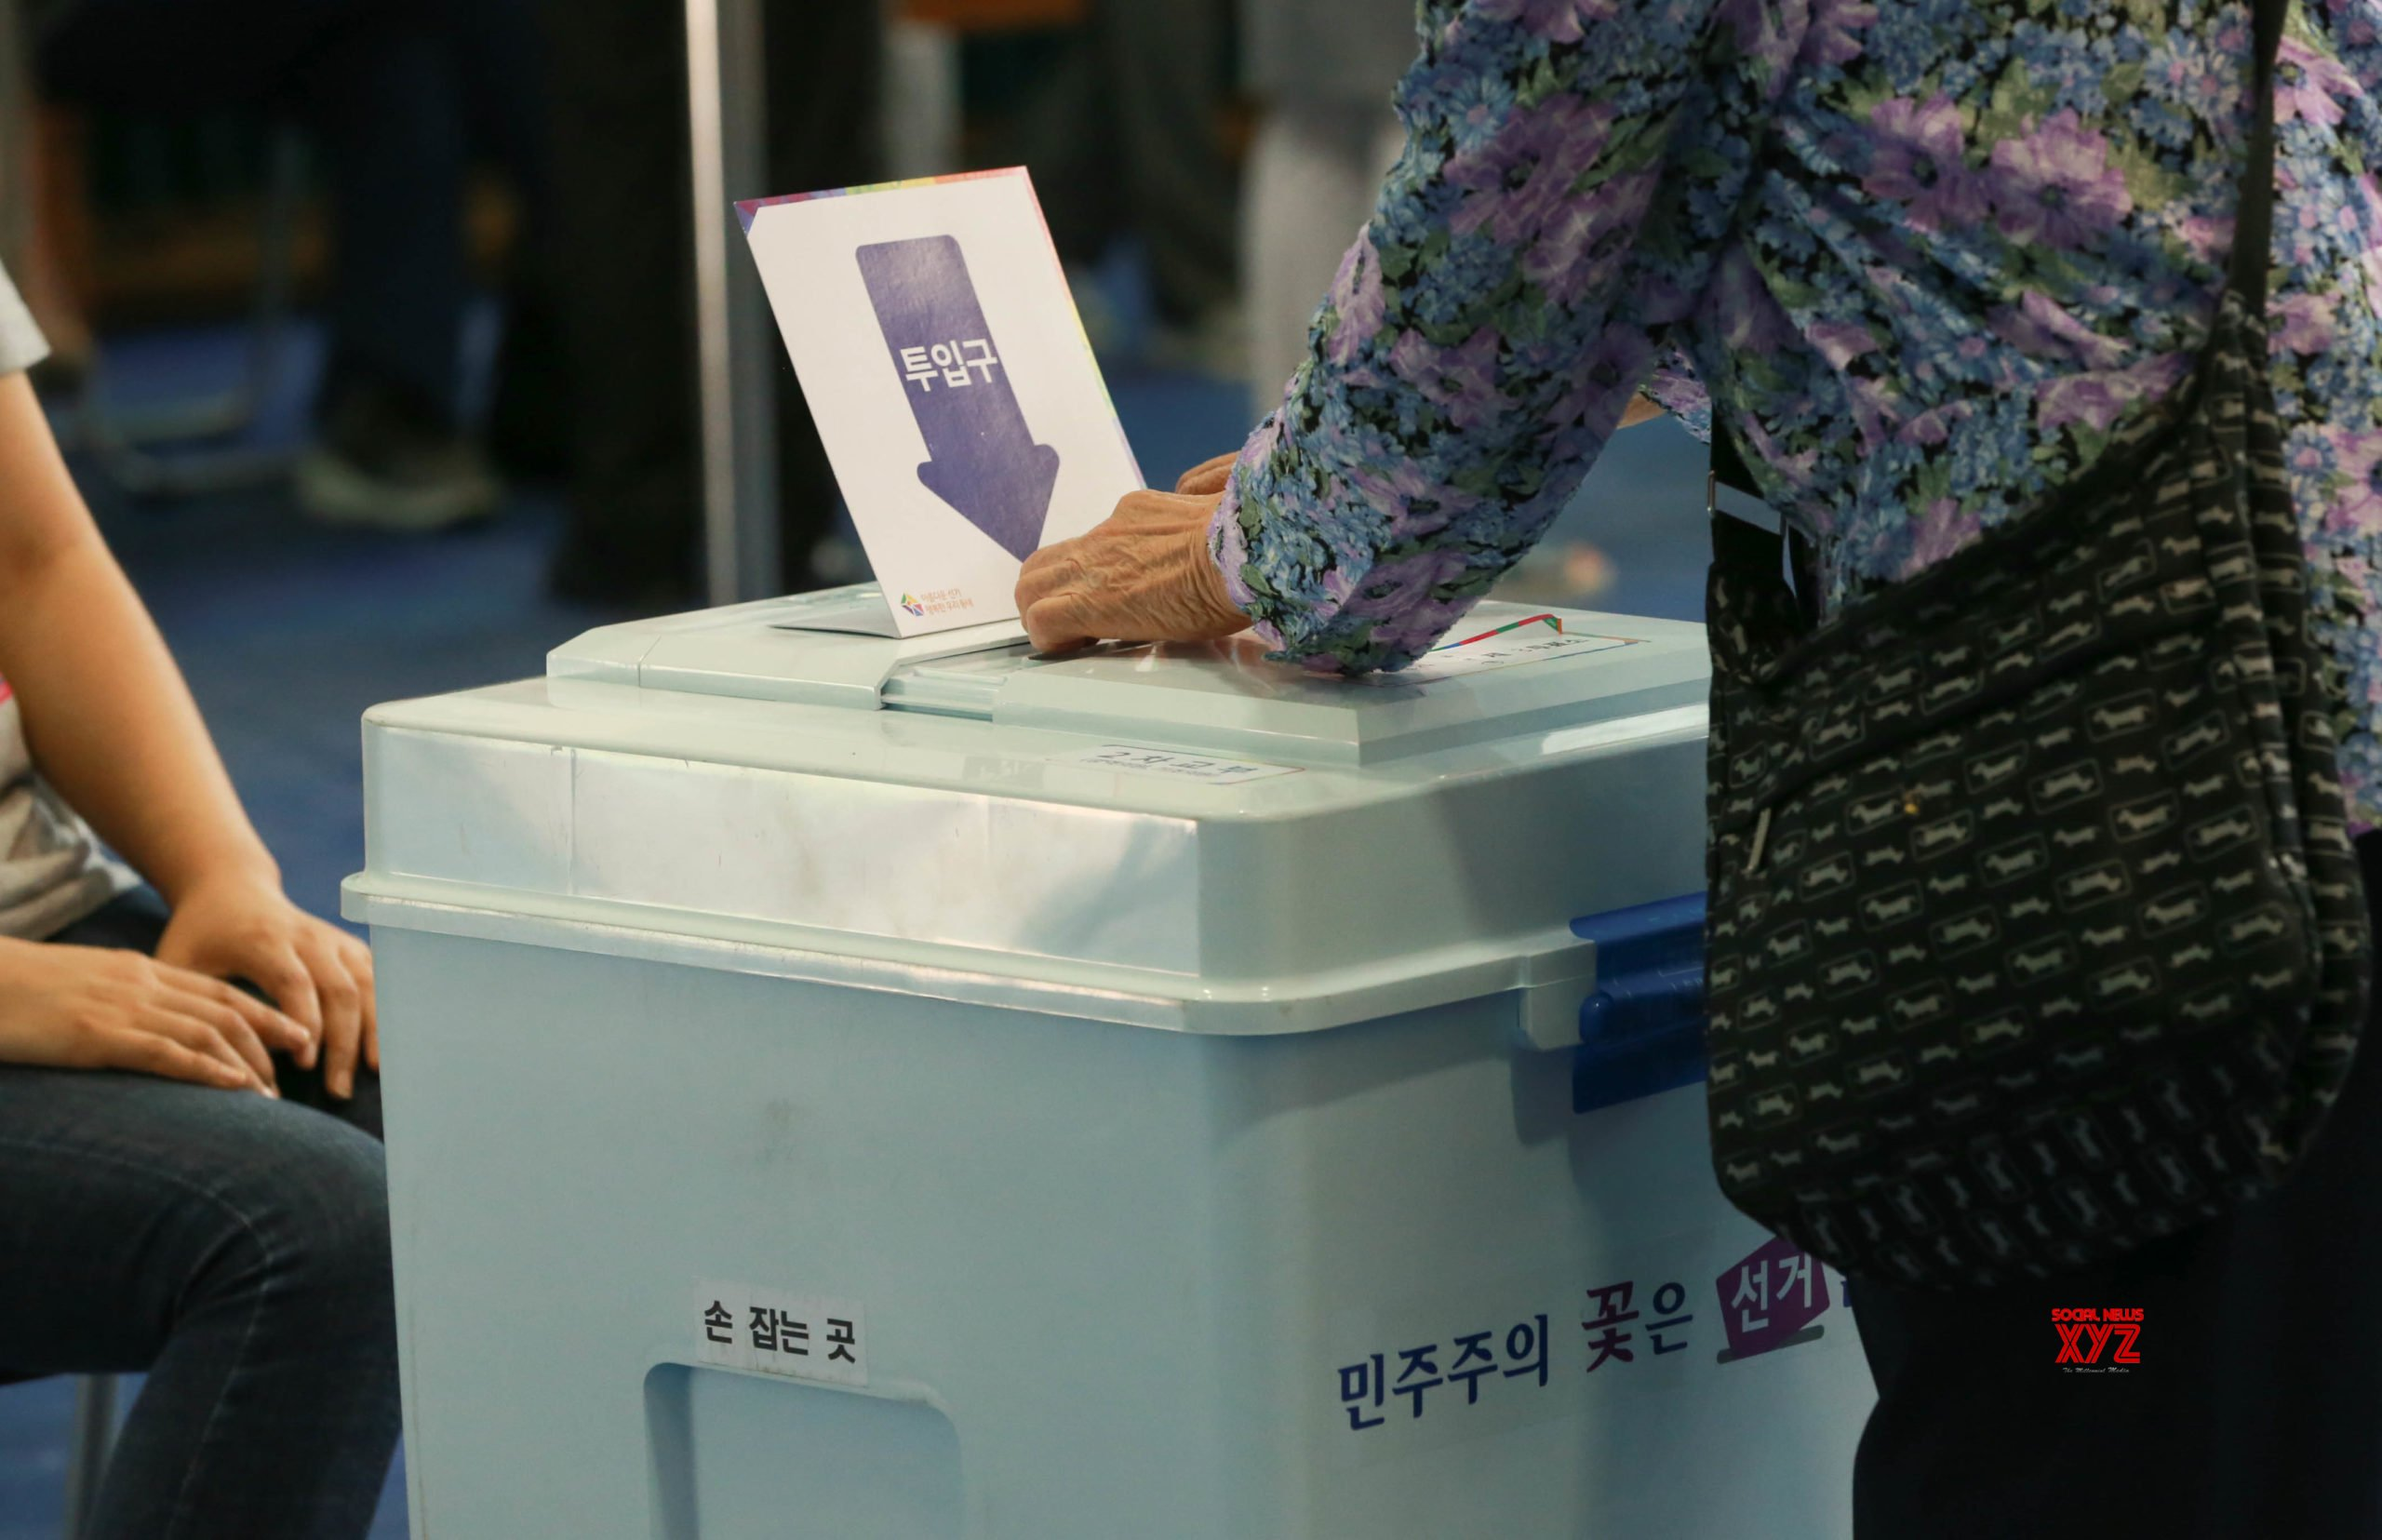 S.Korea's ruling party suffers defeat in mayoral bypolls